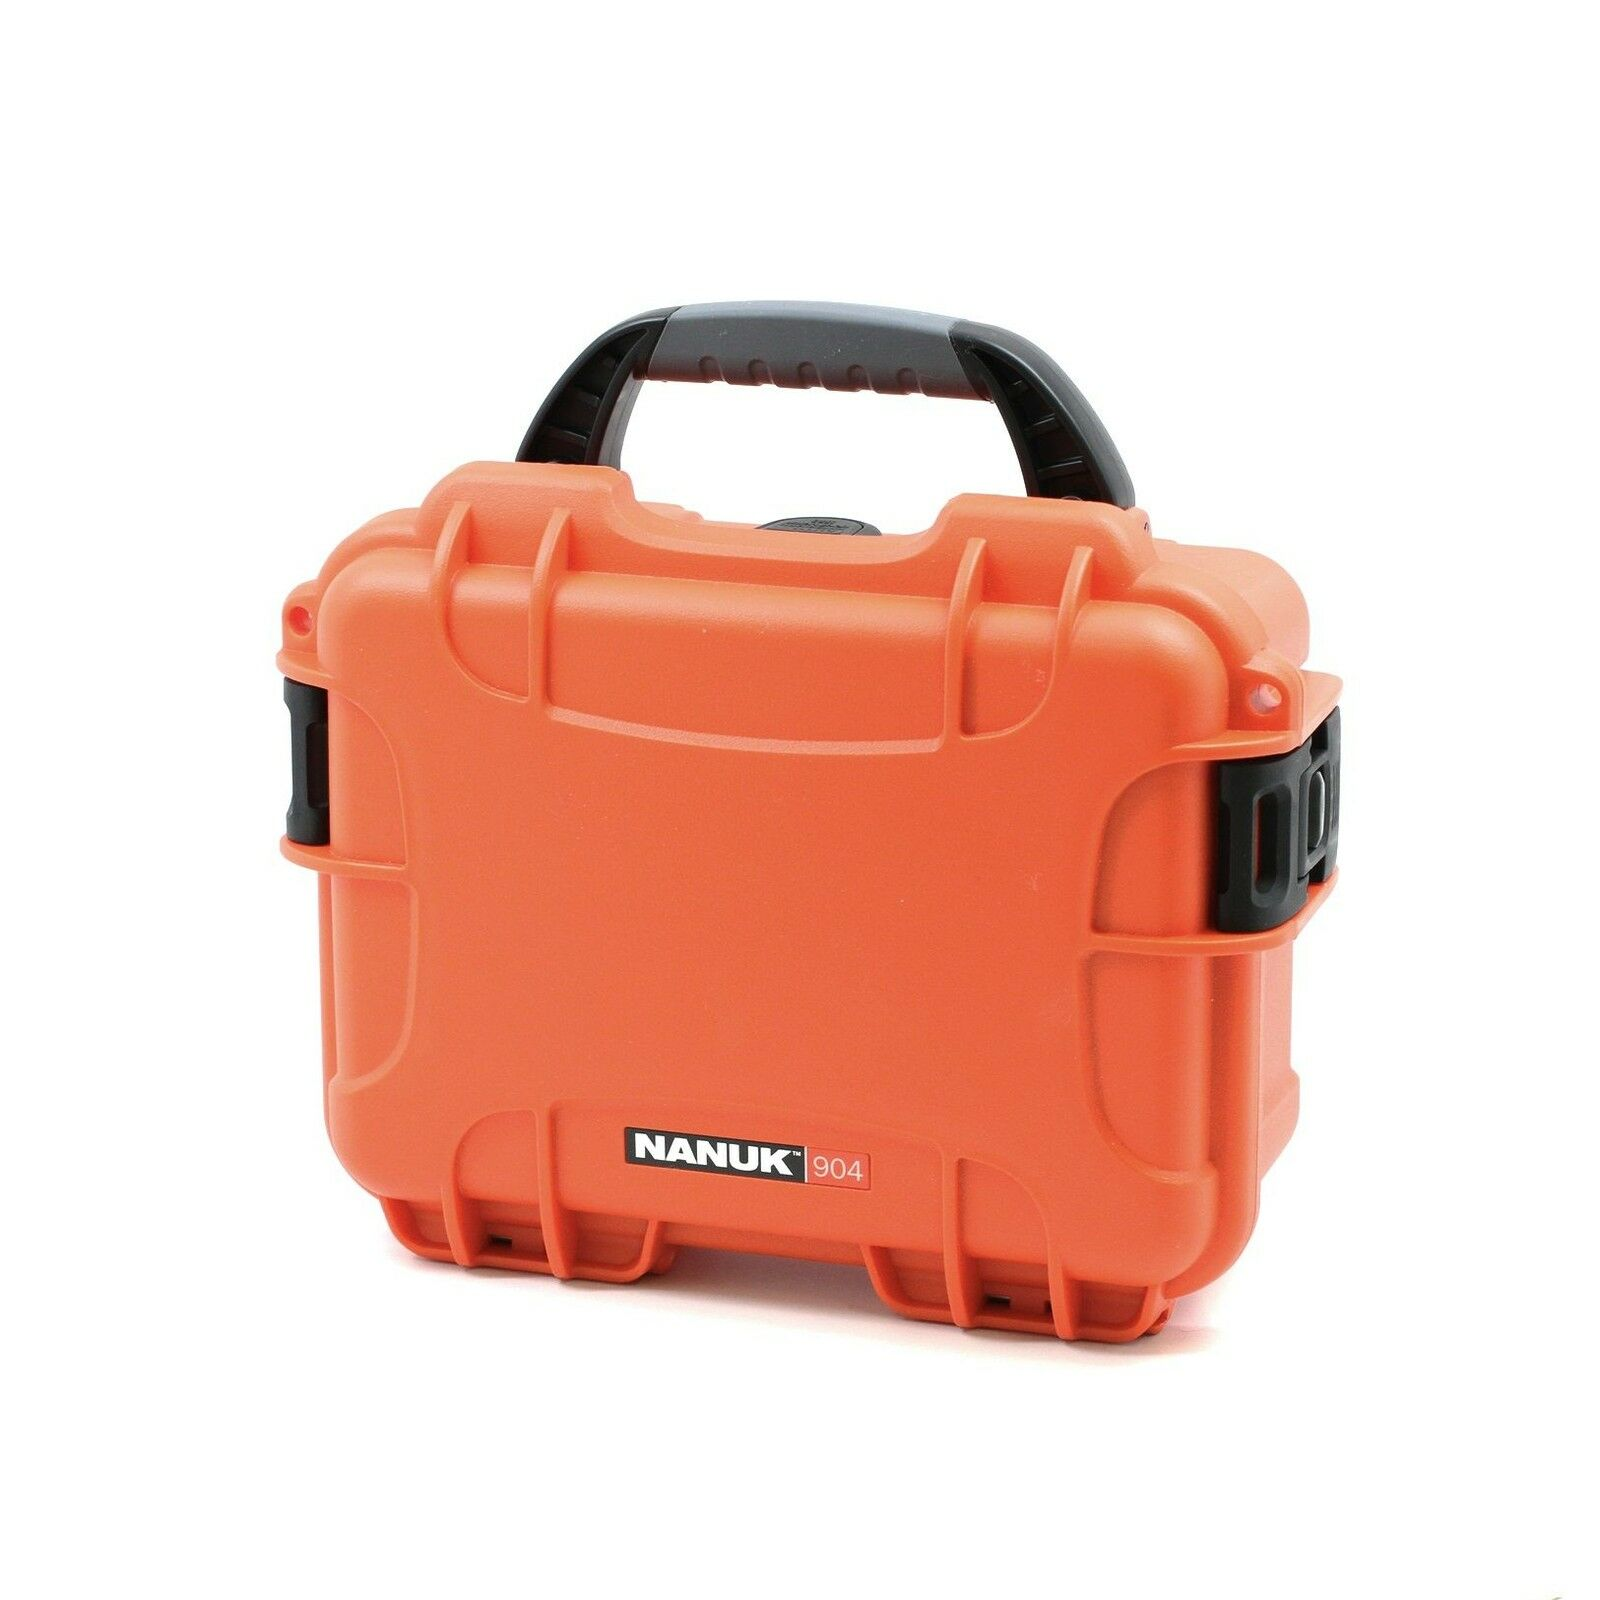 NANUK 904 Case With 3 Part Foam Insert Orange - NANUK Camera